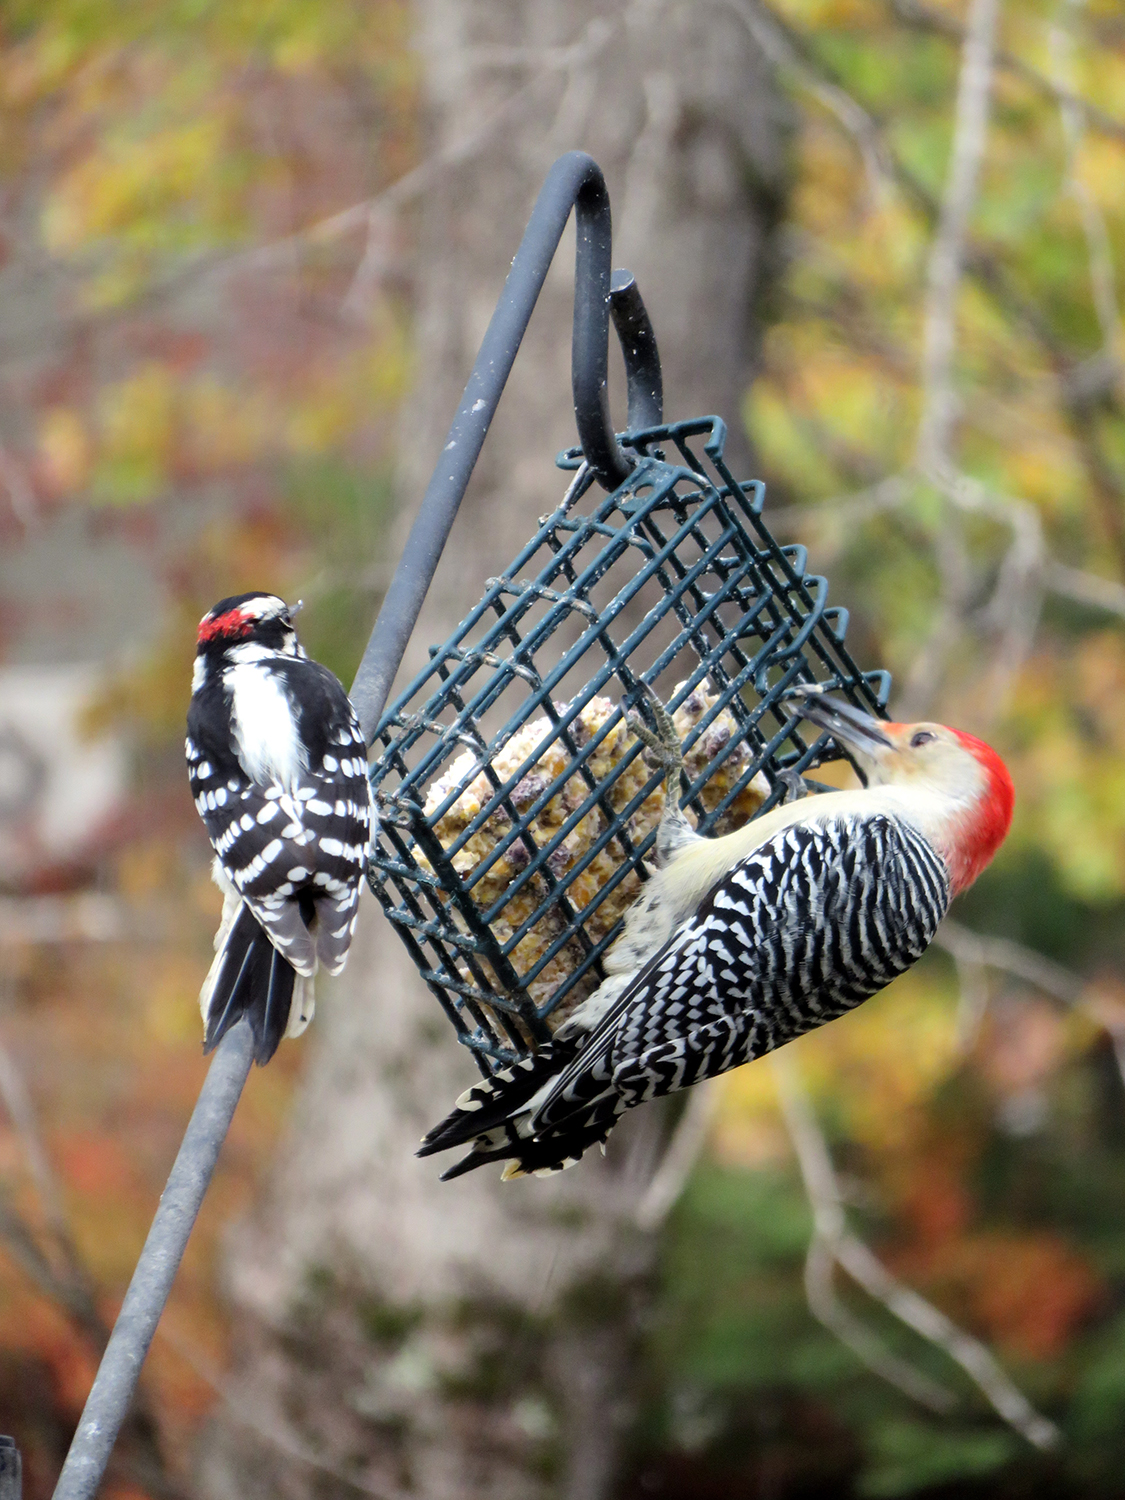 A little downey probably wishes the red-bellied woodpecker would stick to trees while waiting patiently for a serving of suet at Cathy Wilkie Conley's feeder in Alfred.